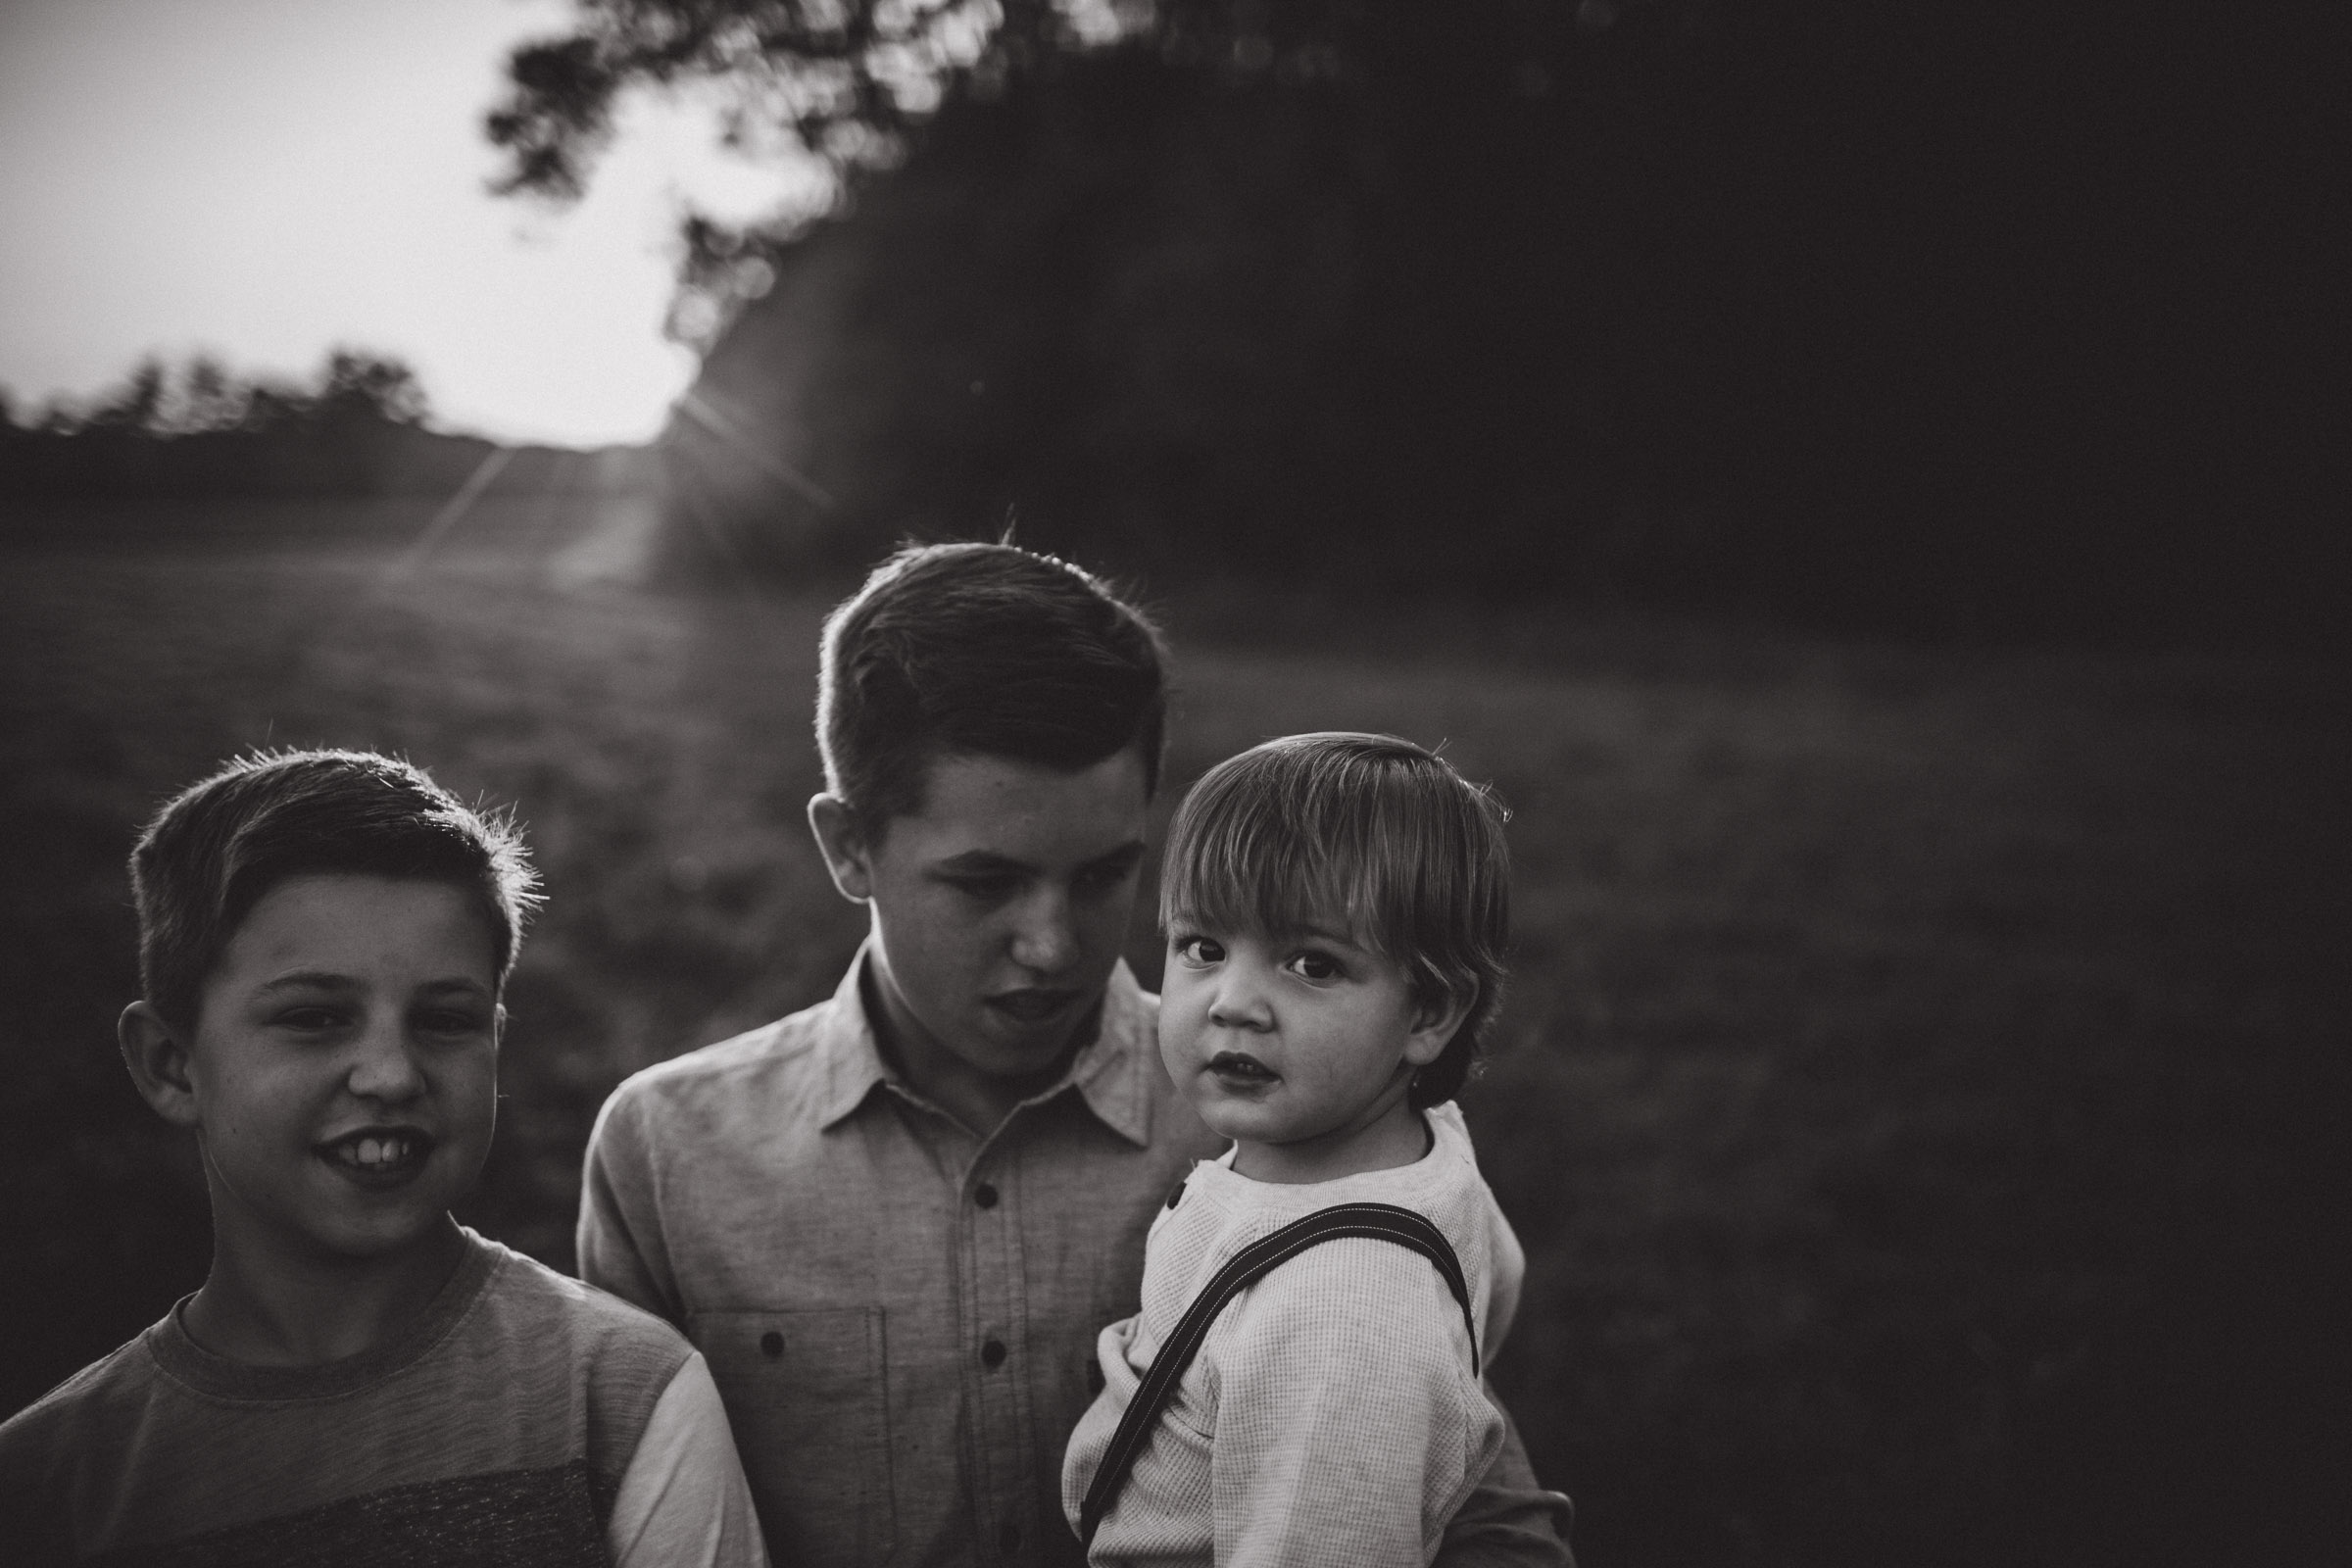 boys taking care of their younger brother, BW Portrait